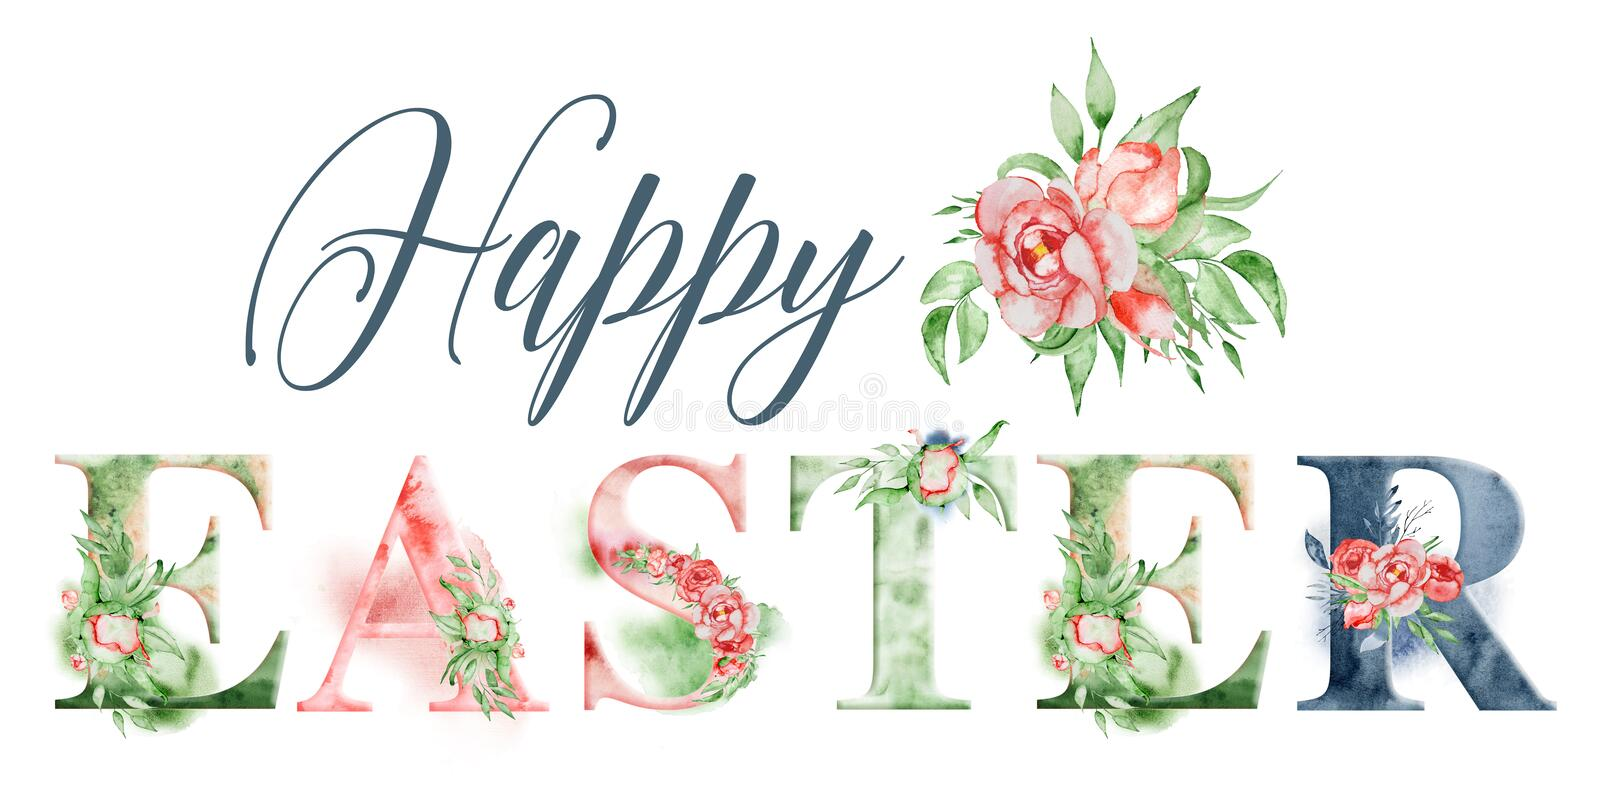 Happy Easter watercolor word design with floral bouquets and crown. Hand drawn lettering, typography inscription. Inspiring label royalty free illustration